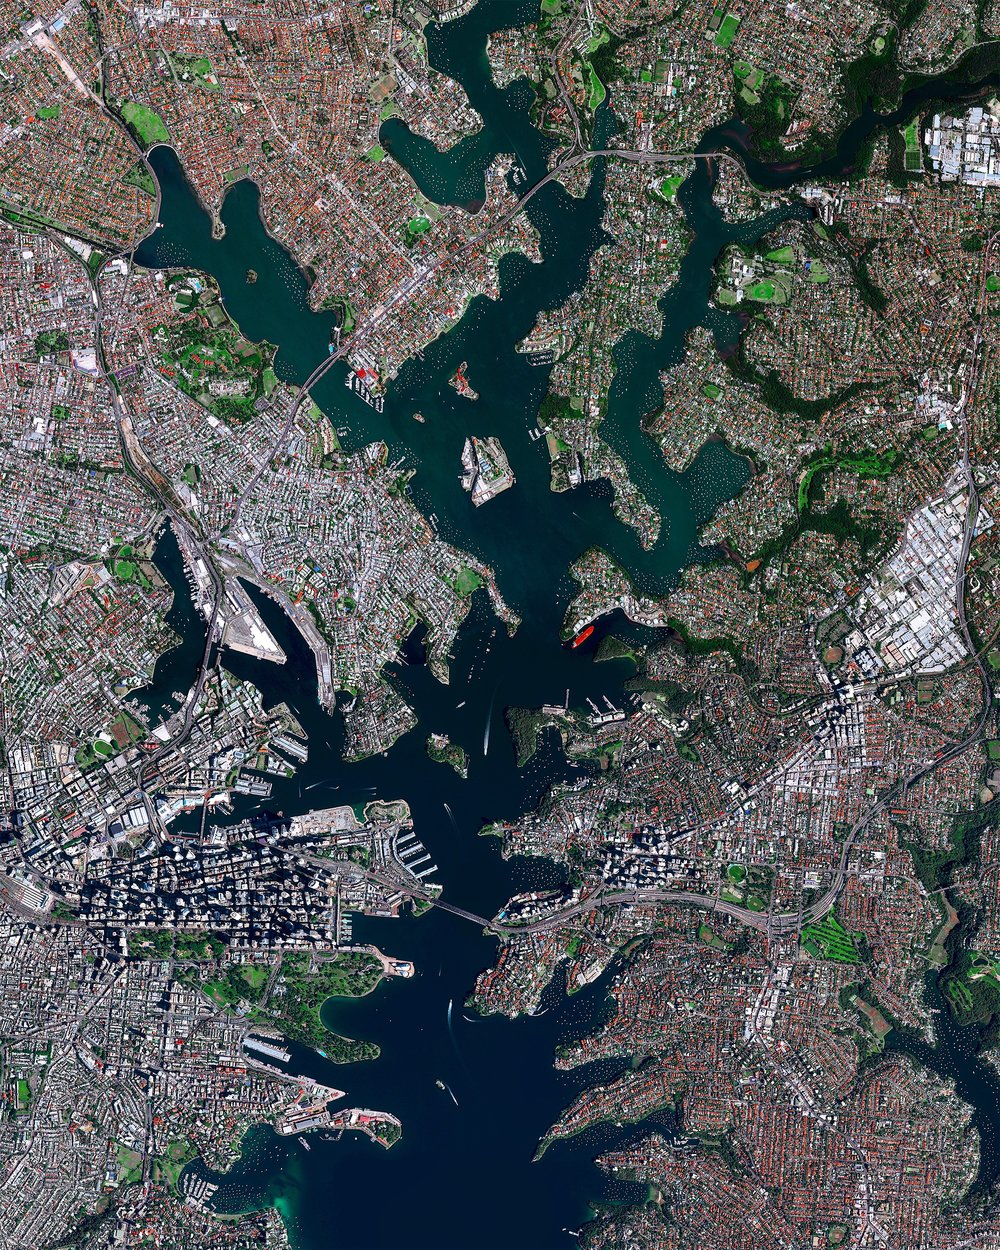 Check out this stunning view of Sydney, Australia. The city is the most populous on the continent with more than five million residents. The geography of the city - located on the Tasman Sea and built around numerous harbors and inlets - is captured in this Overview.  -33.8679058, 151.2012372  Source imagery: DigitalGlobe